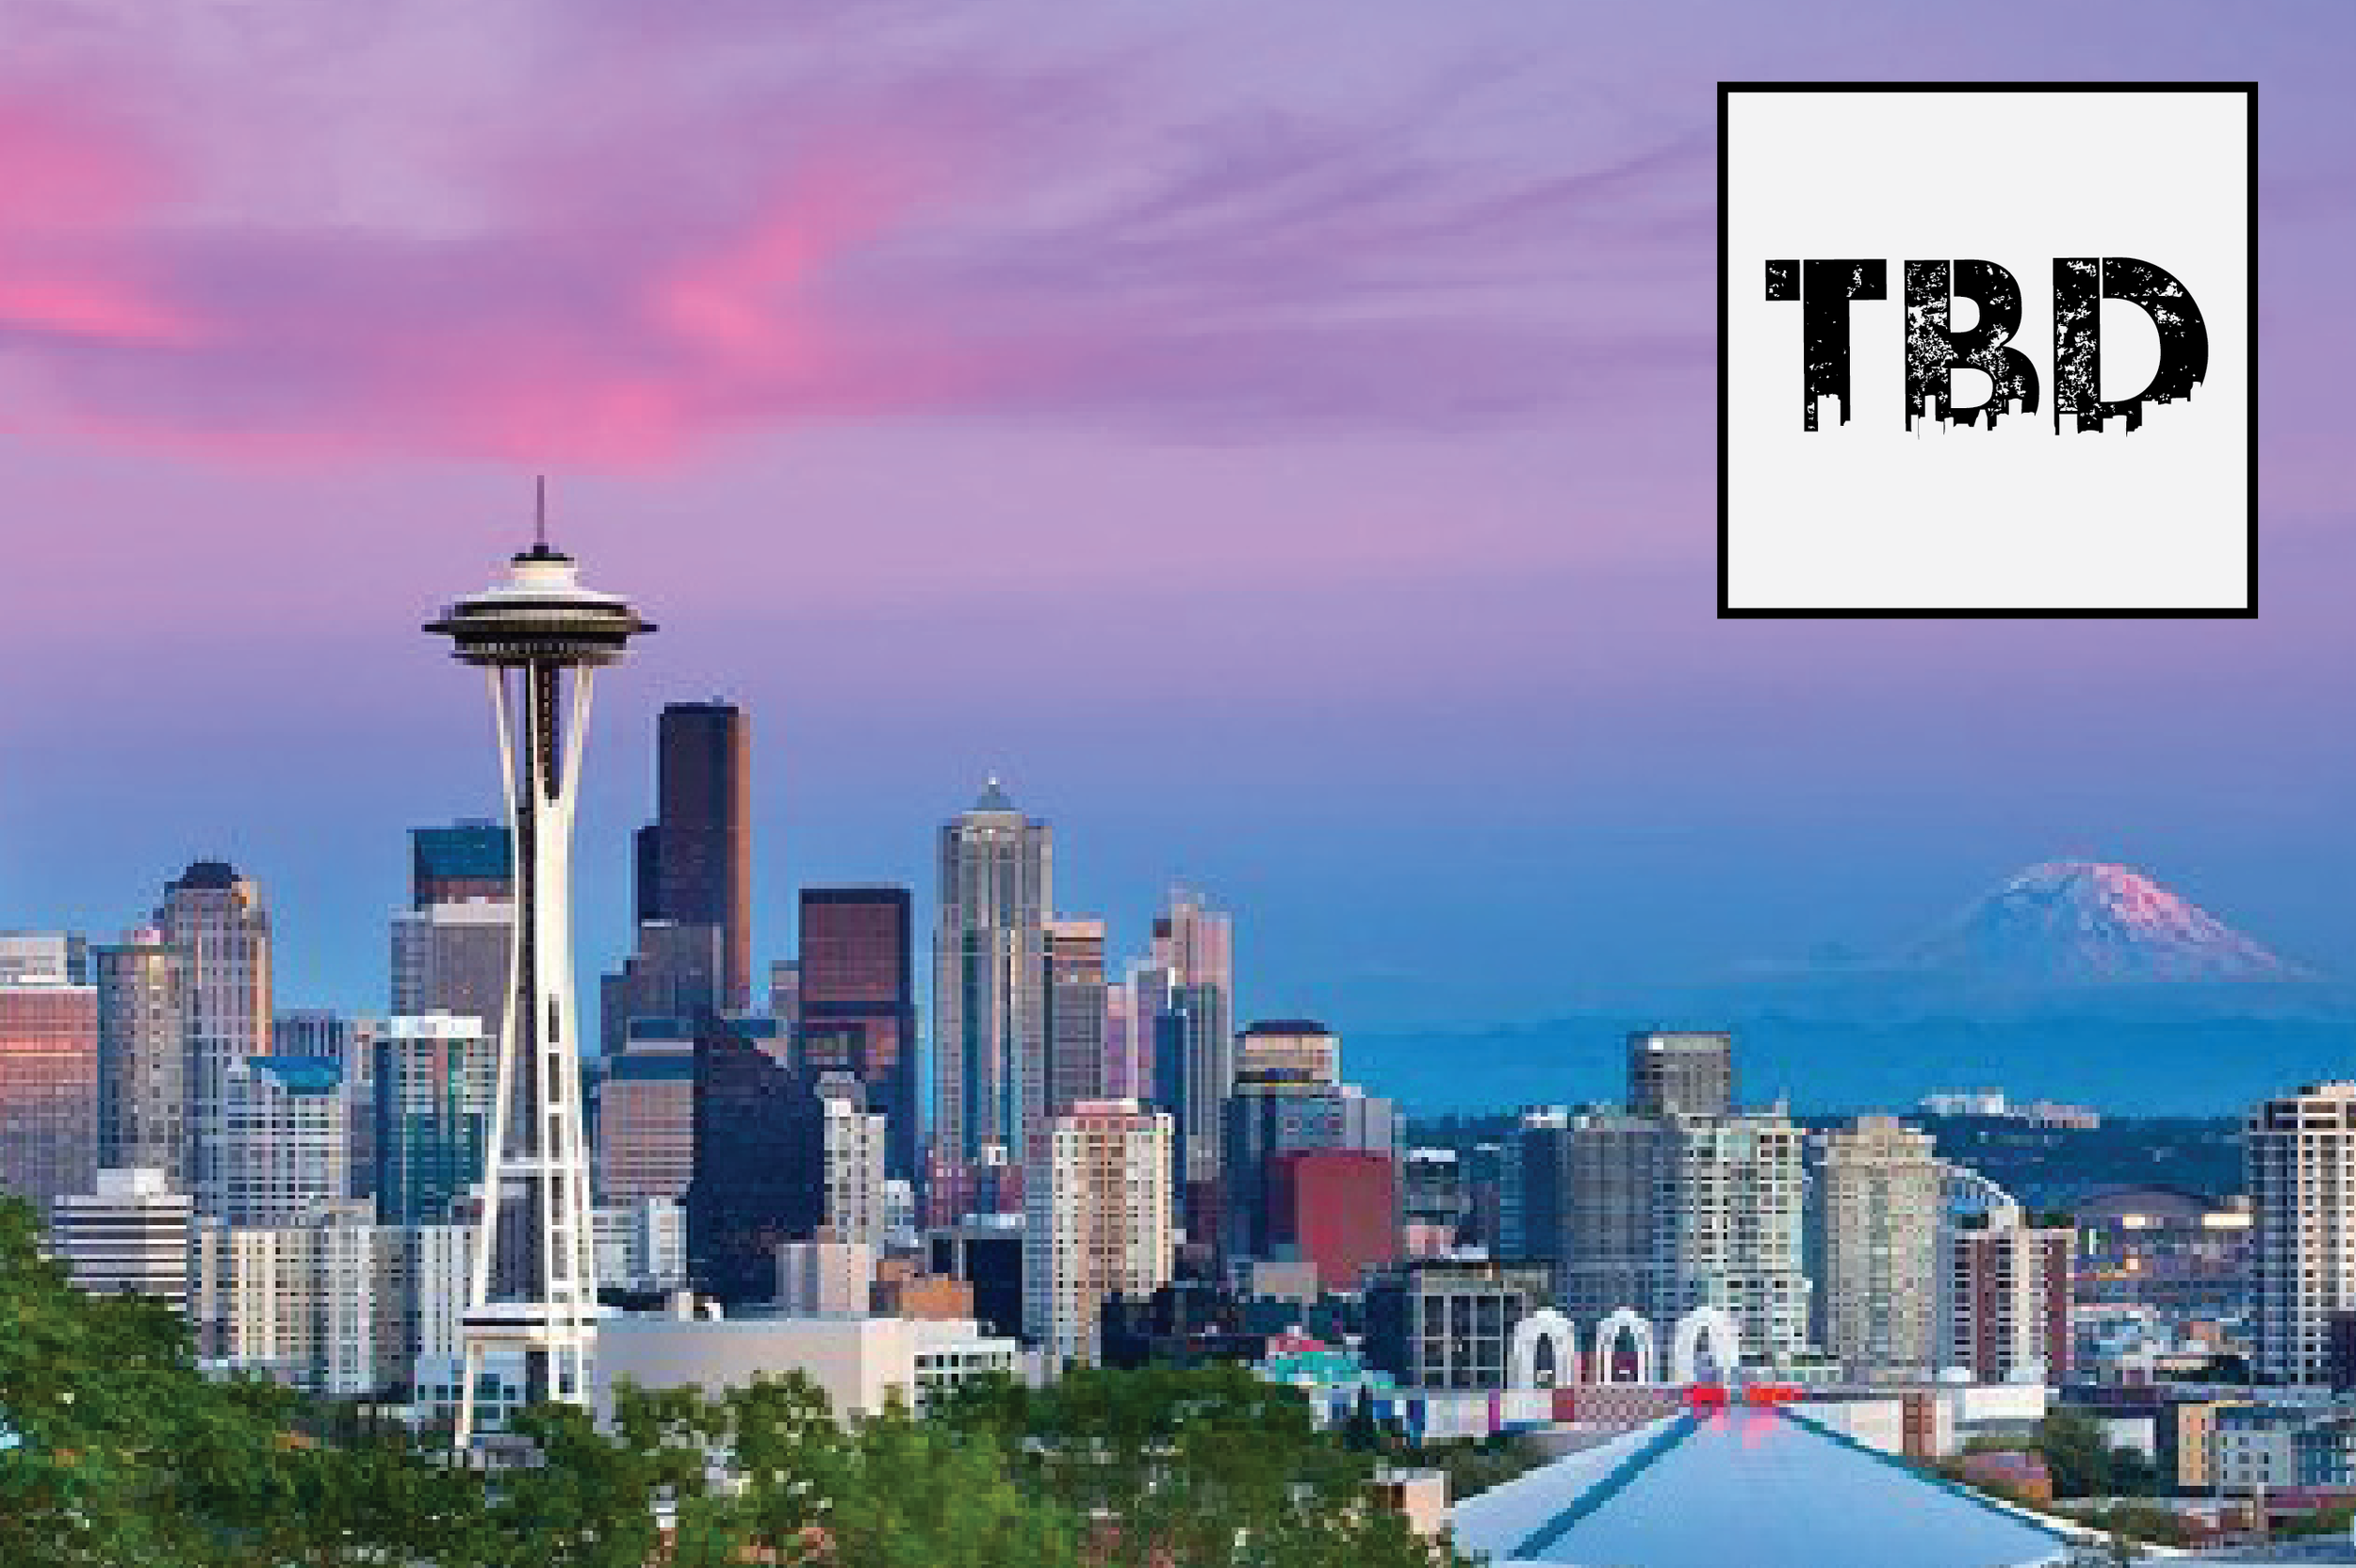 Event: The City GRACE Seattle